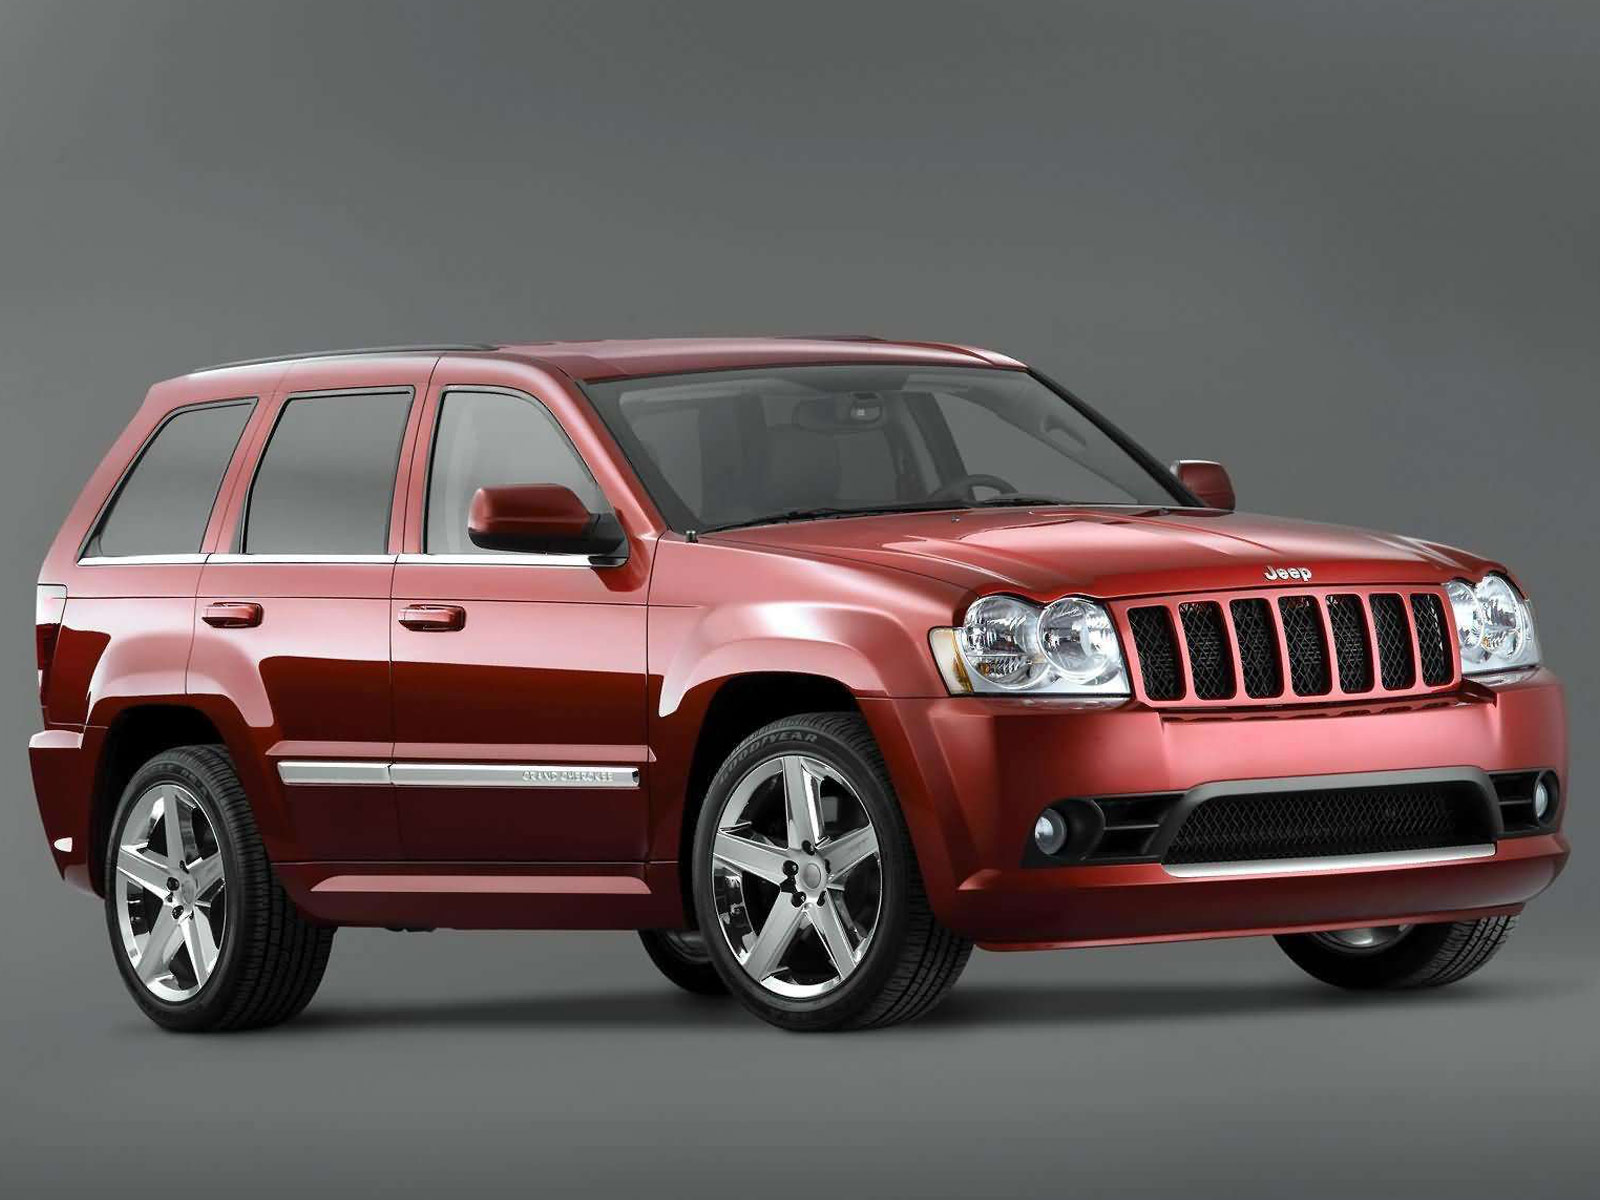 2006 jeep grand cherokee srt8 pictures. Black Bedroom Furniture Sets. Home Design Ideas